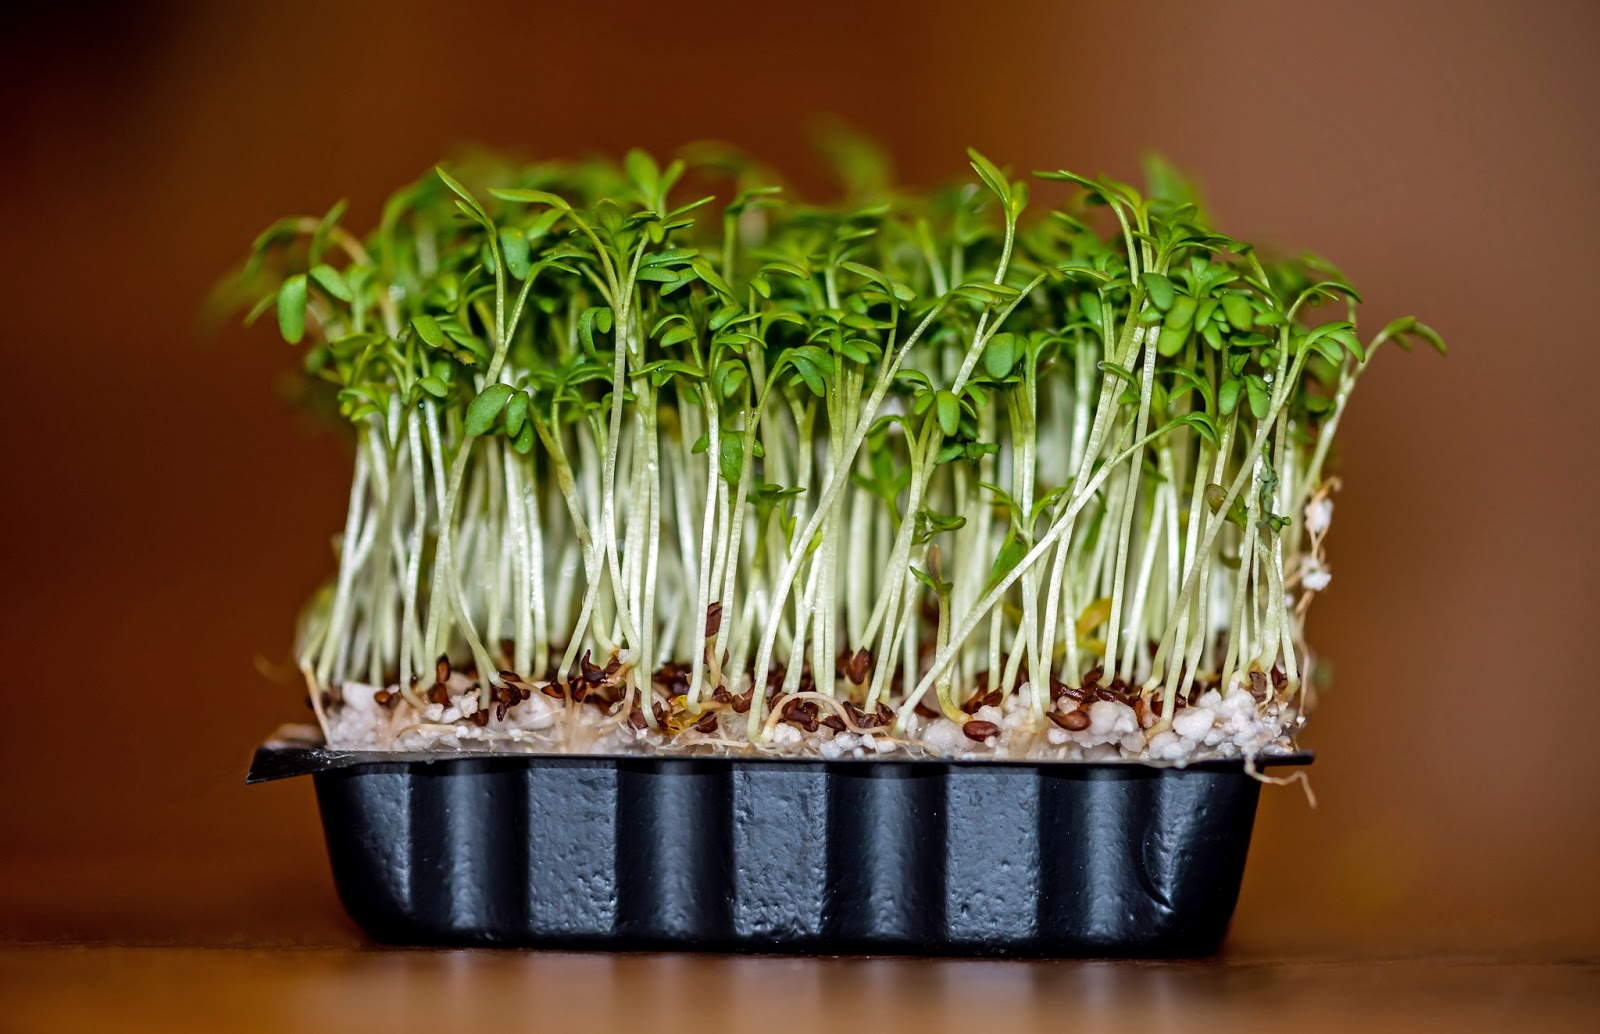 research papers of garden cress seedslepidium sativum Lepidium sativum l in the indian materia medica with ayurvedic unani and home remedies about this article title effect of processing on nutraceutical properties of garden cress (lepidium sativum l) seeds.